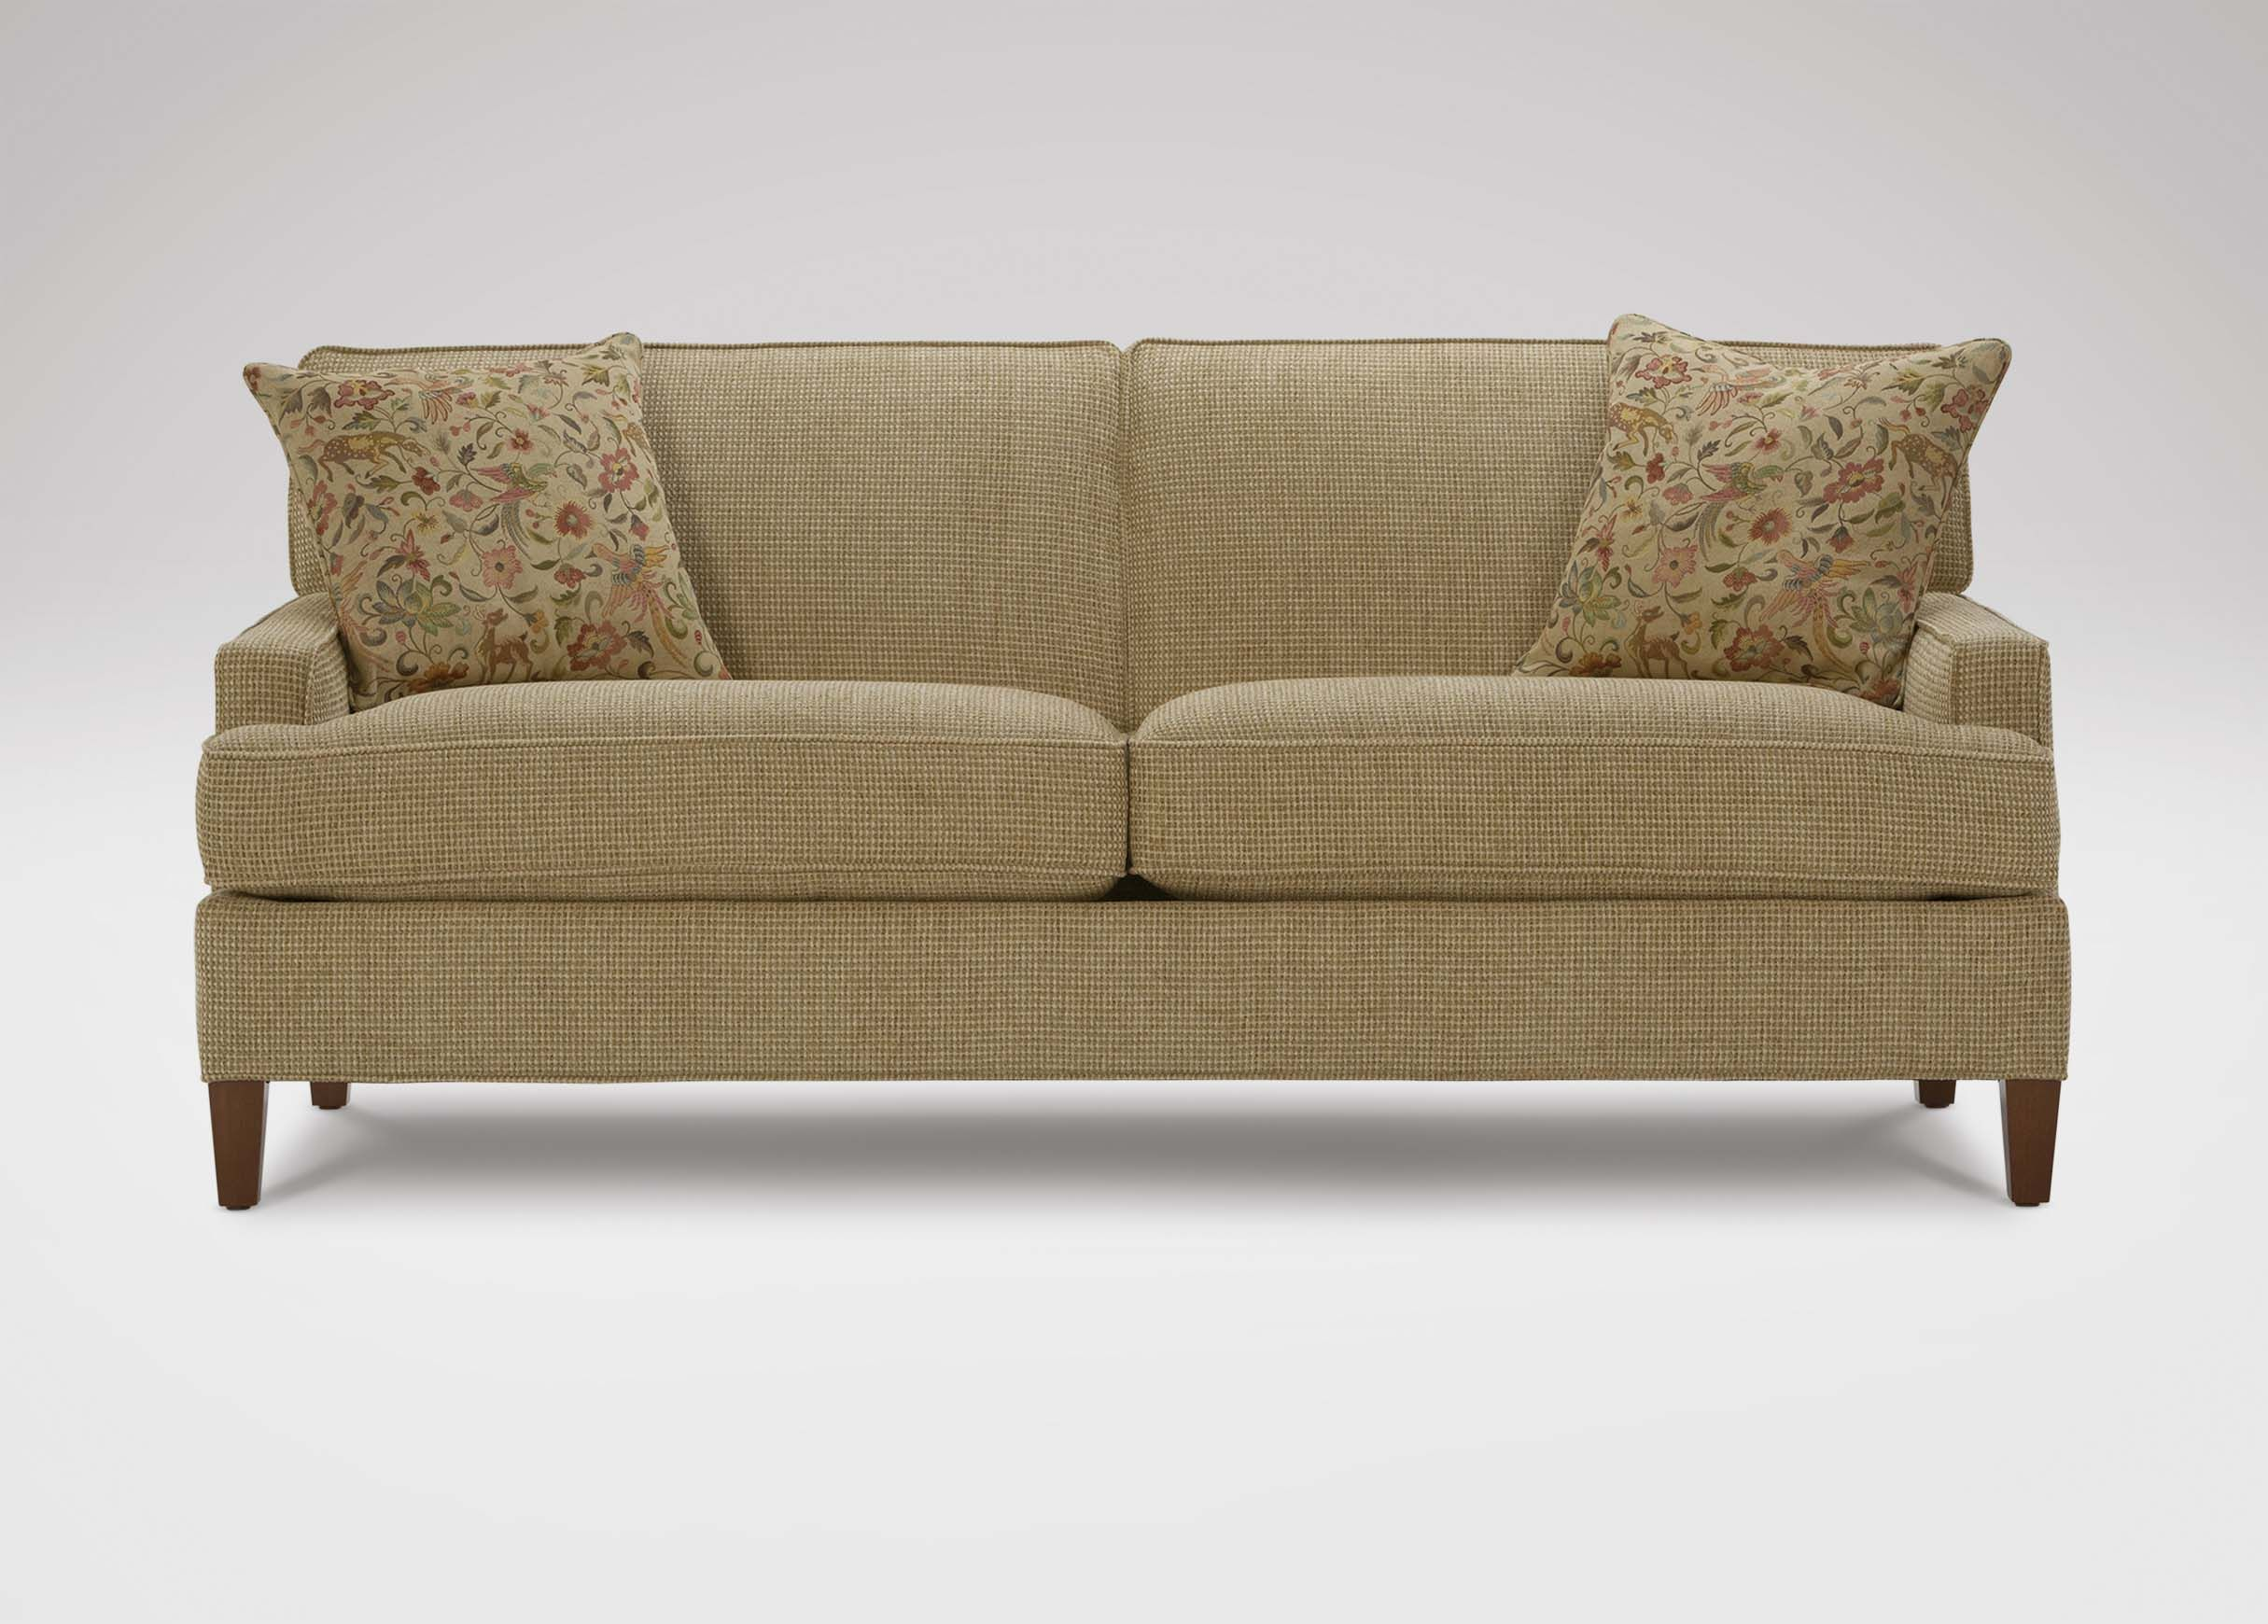 Bryant Sofa Ethan Allen A Back But With The Separation In Middle It Doesn T Look Like All S Color And Texture